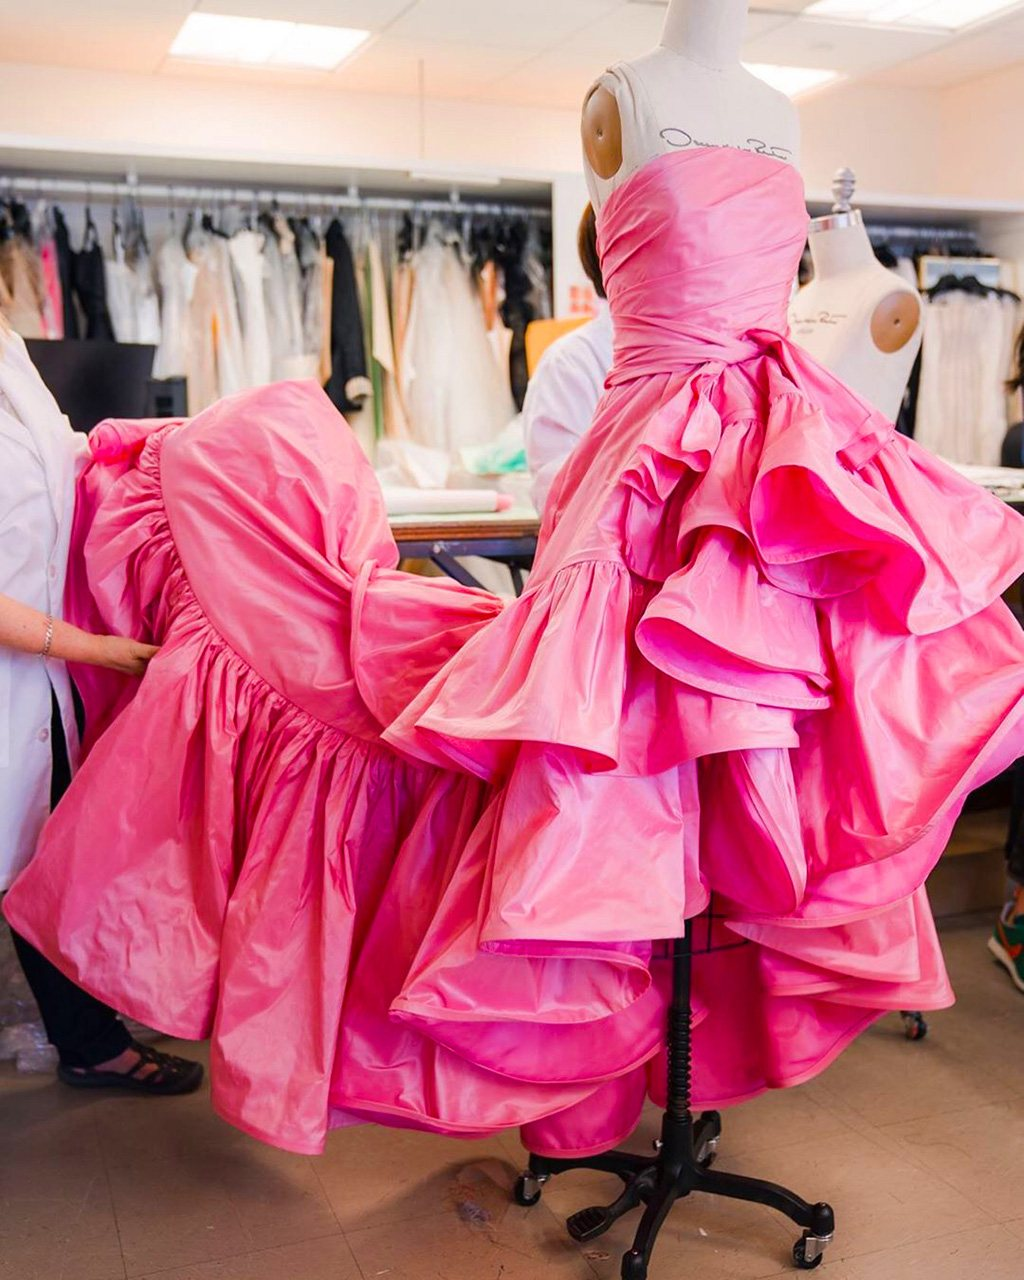 Oscar de la Renta Spring 2020 Runway gown at the brand's atelier.